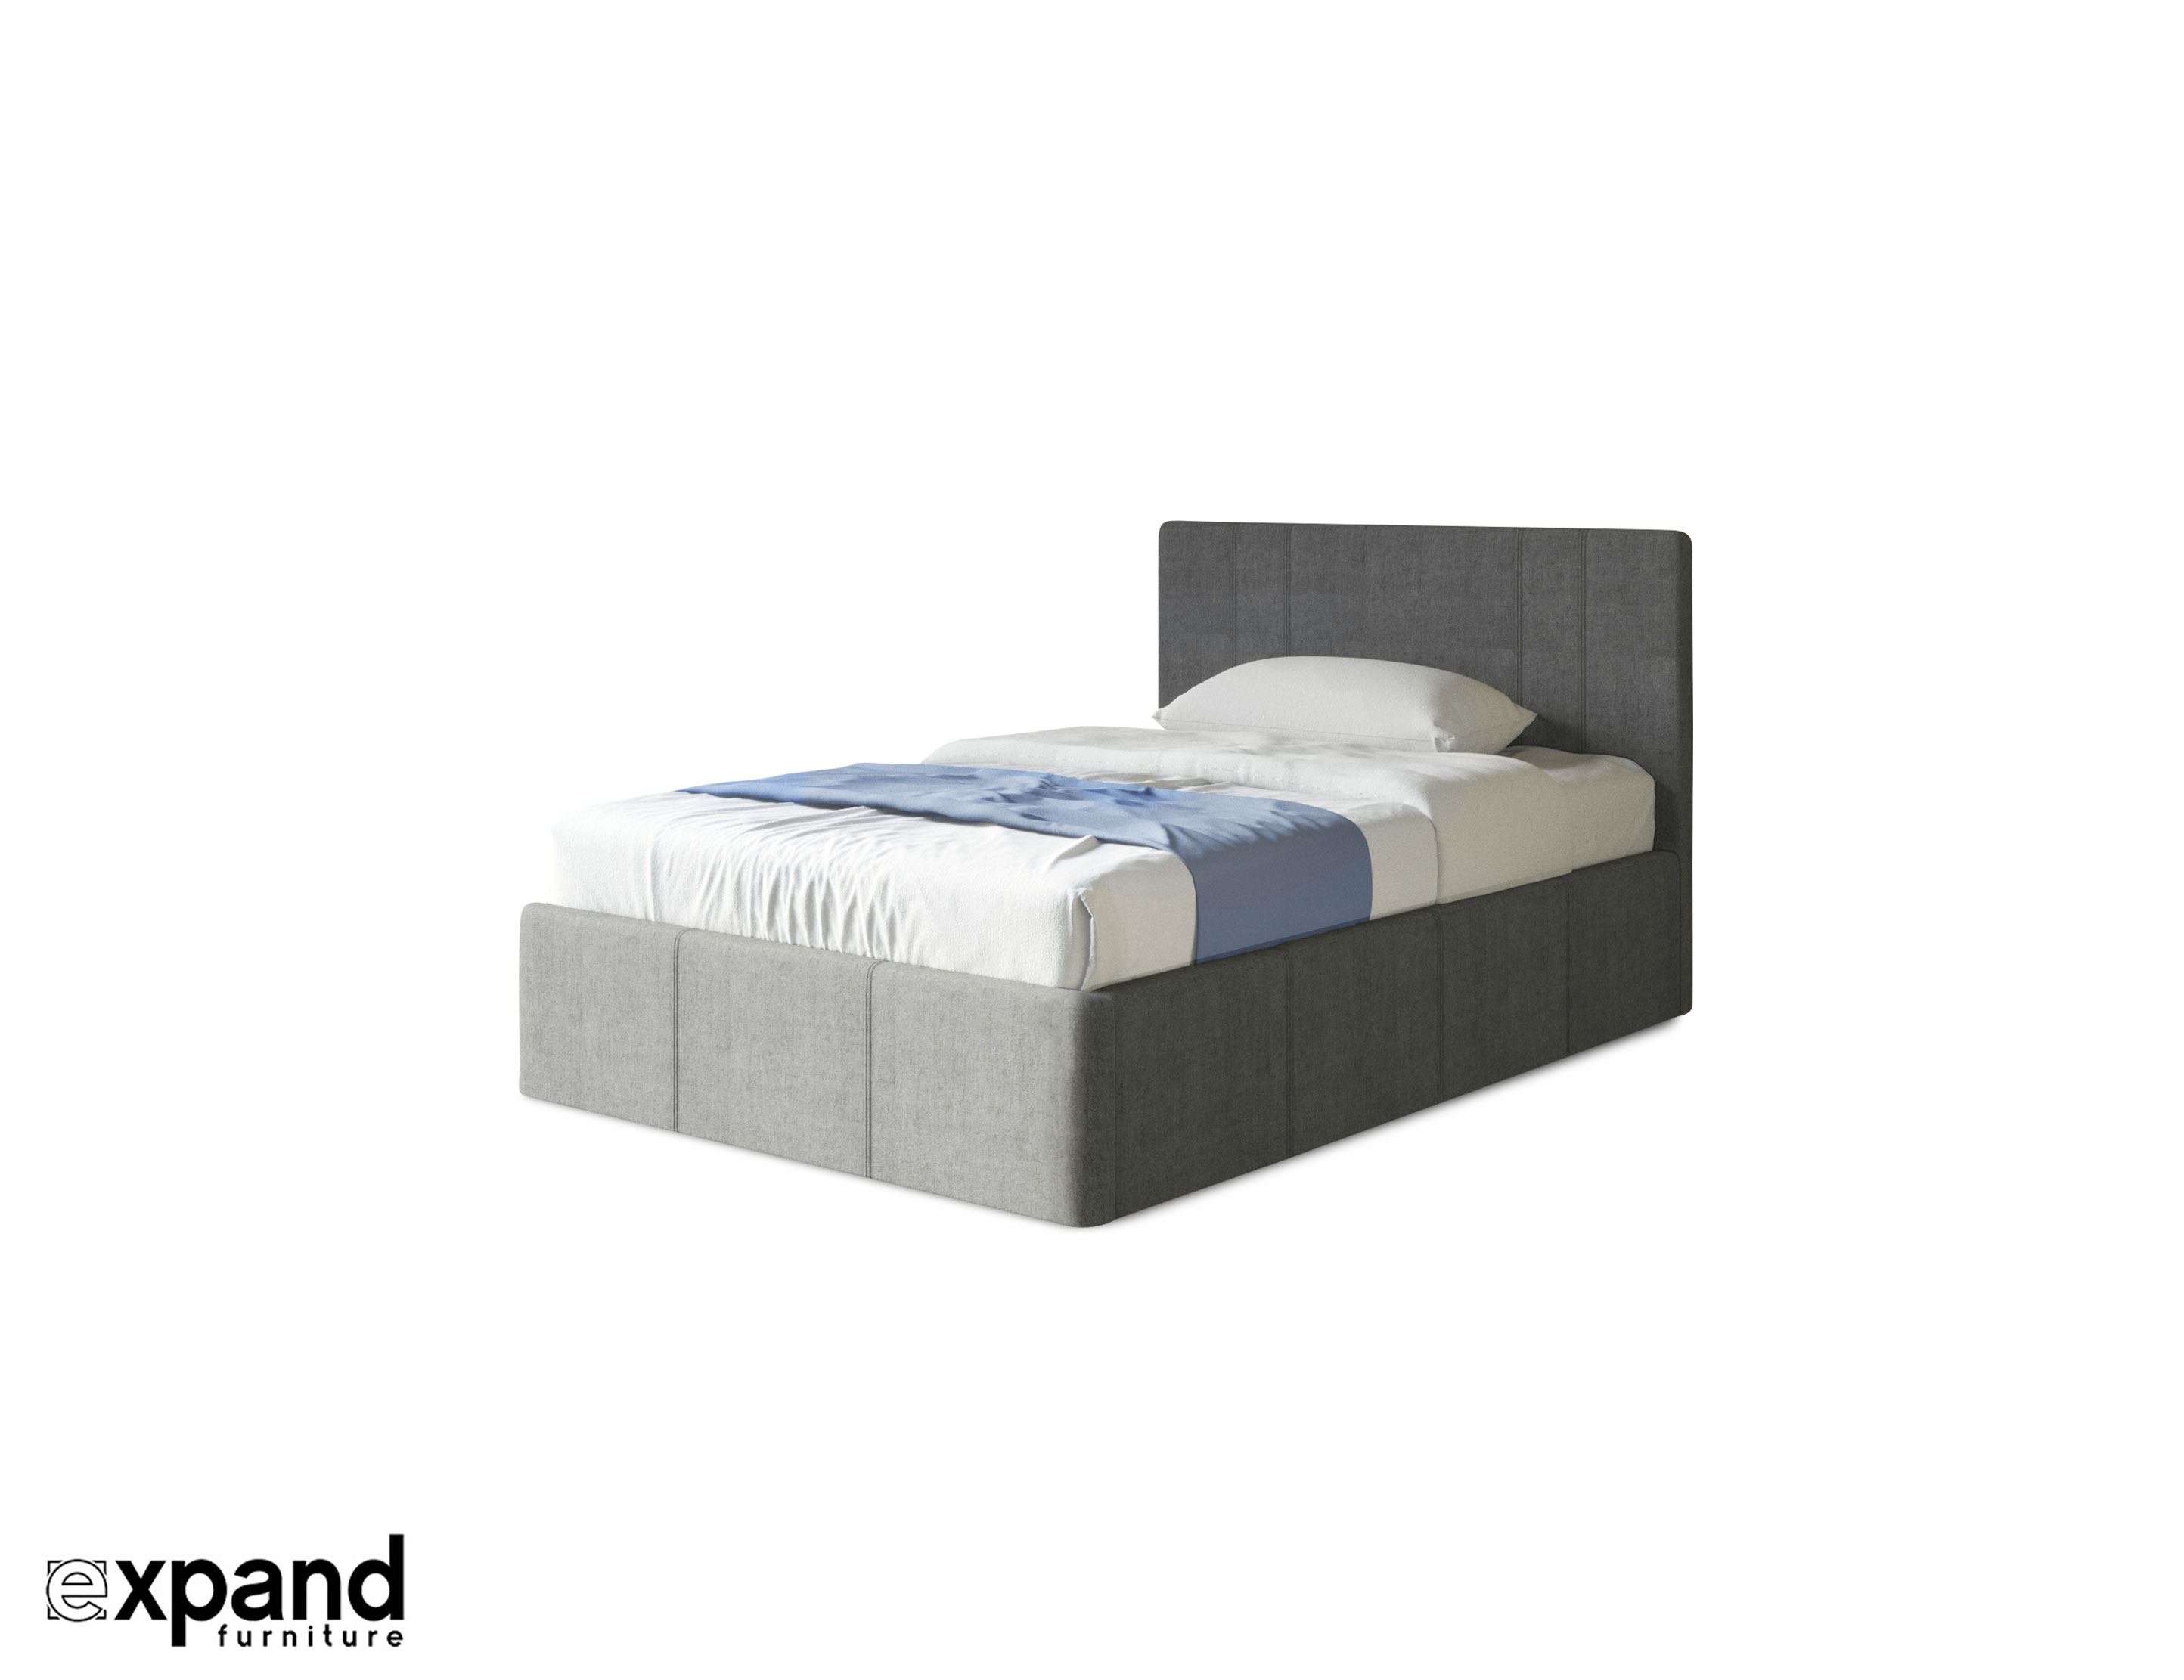 Gas Lift Ottoman Bed Reveal Twin Side Lifting Storage Bed